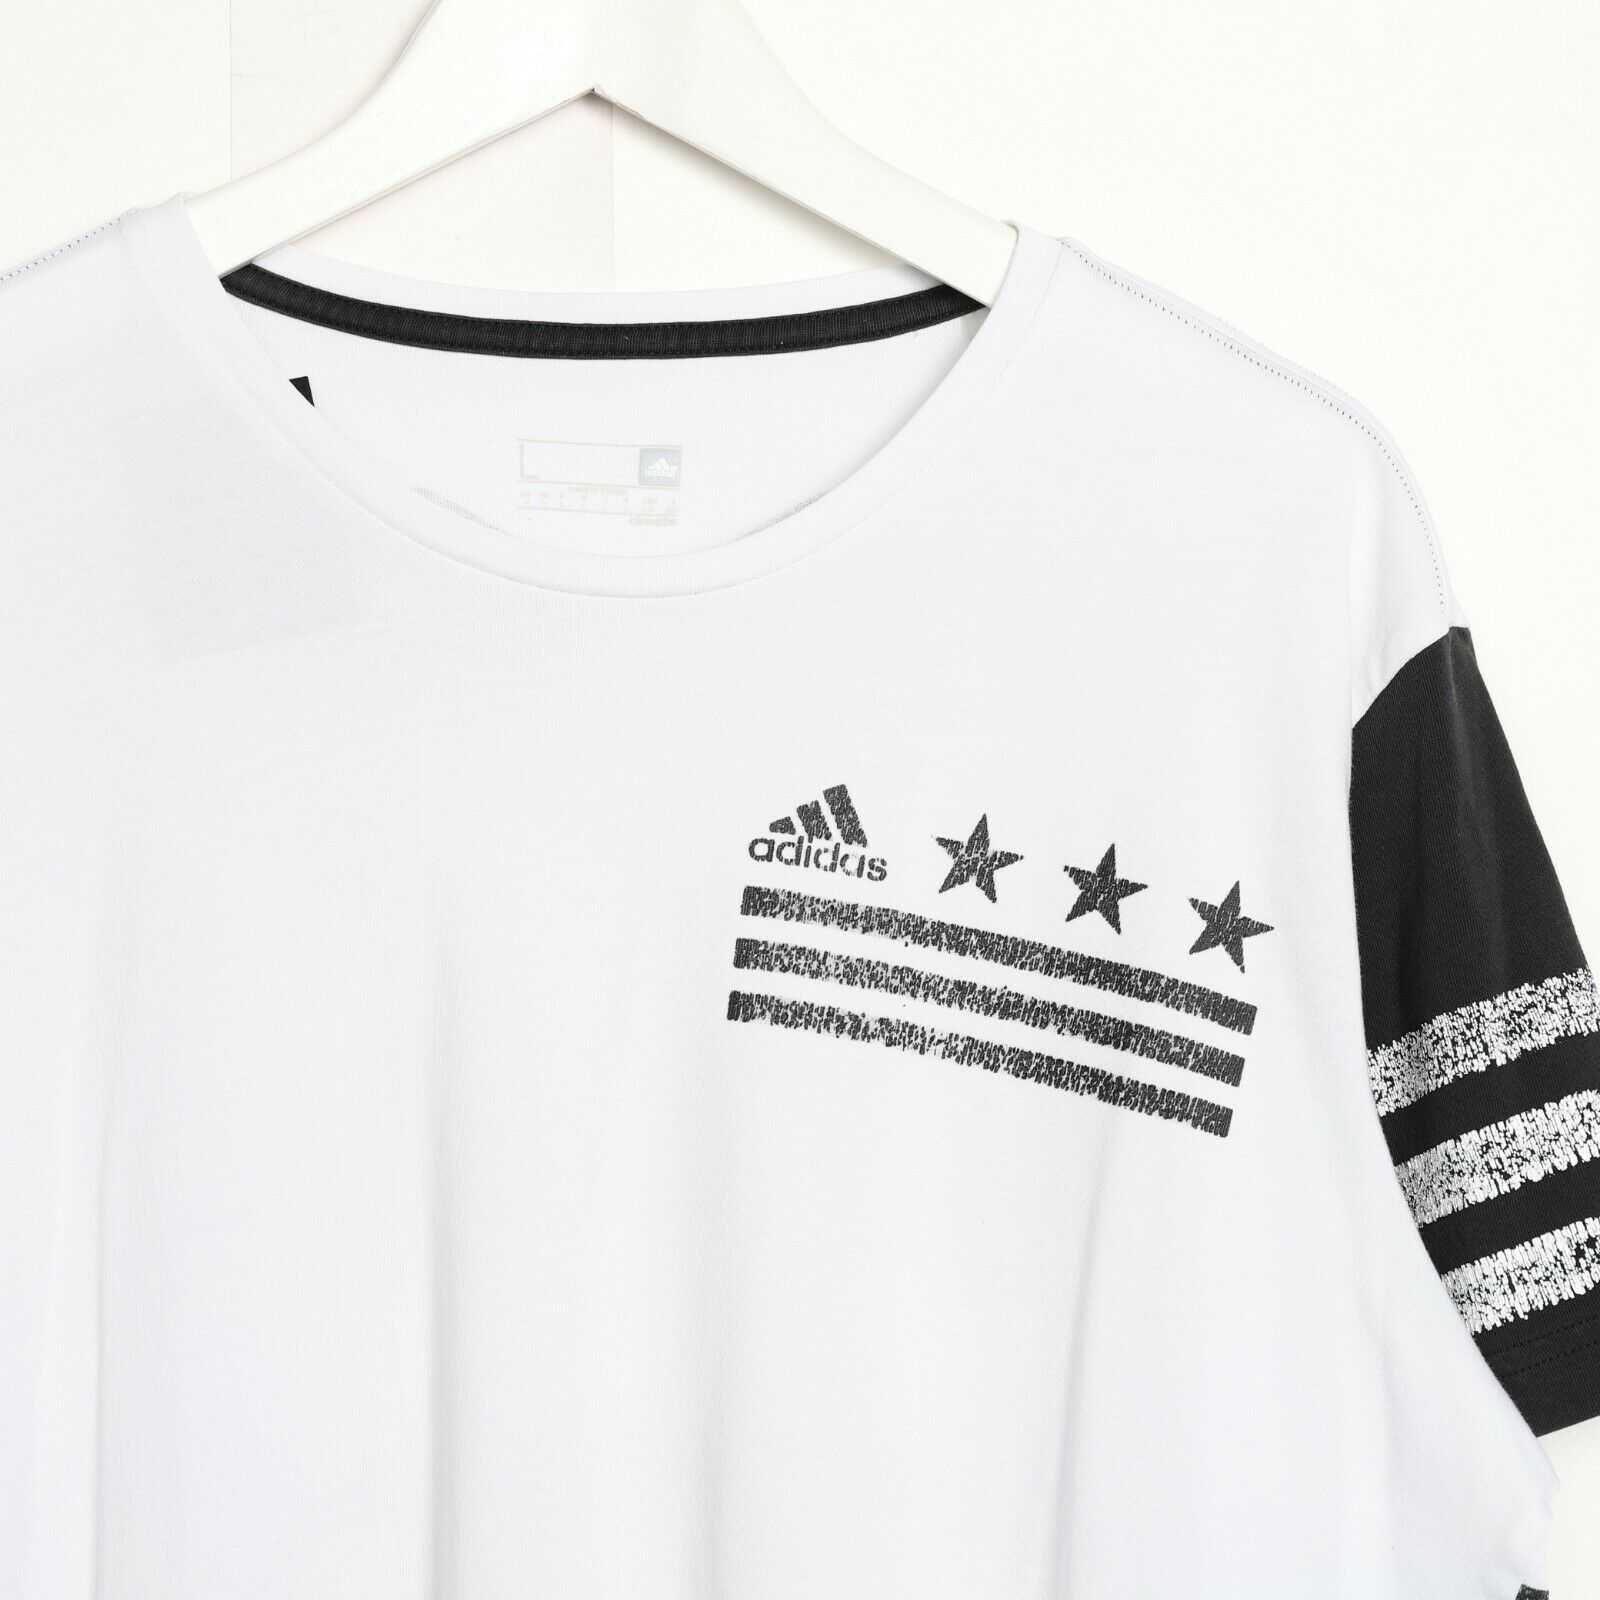 Vintage ADIDAS Graphic Print T Shirt Tee White | Large L